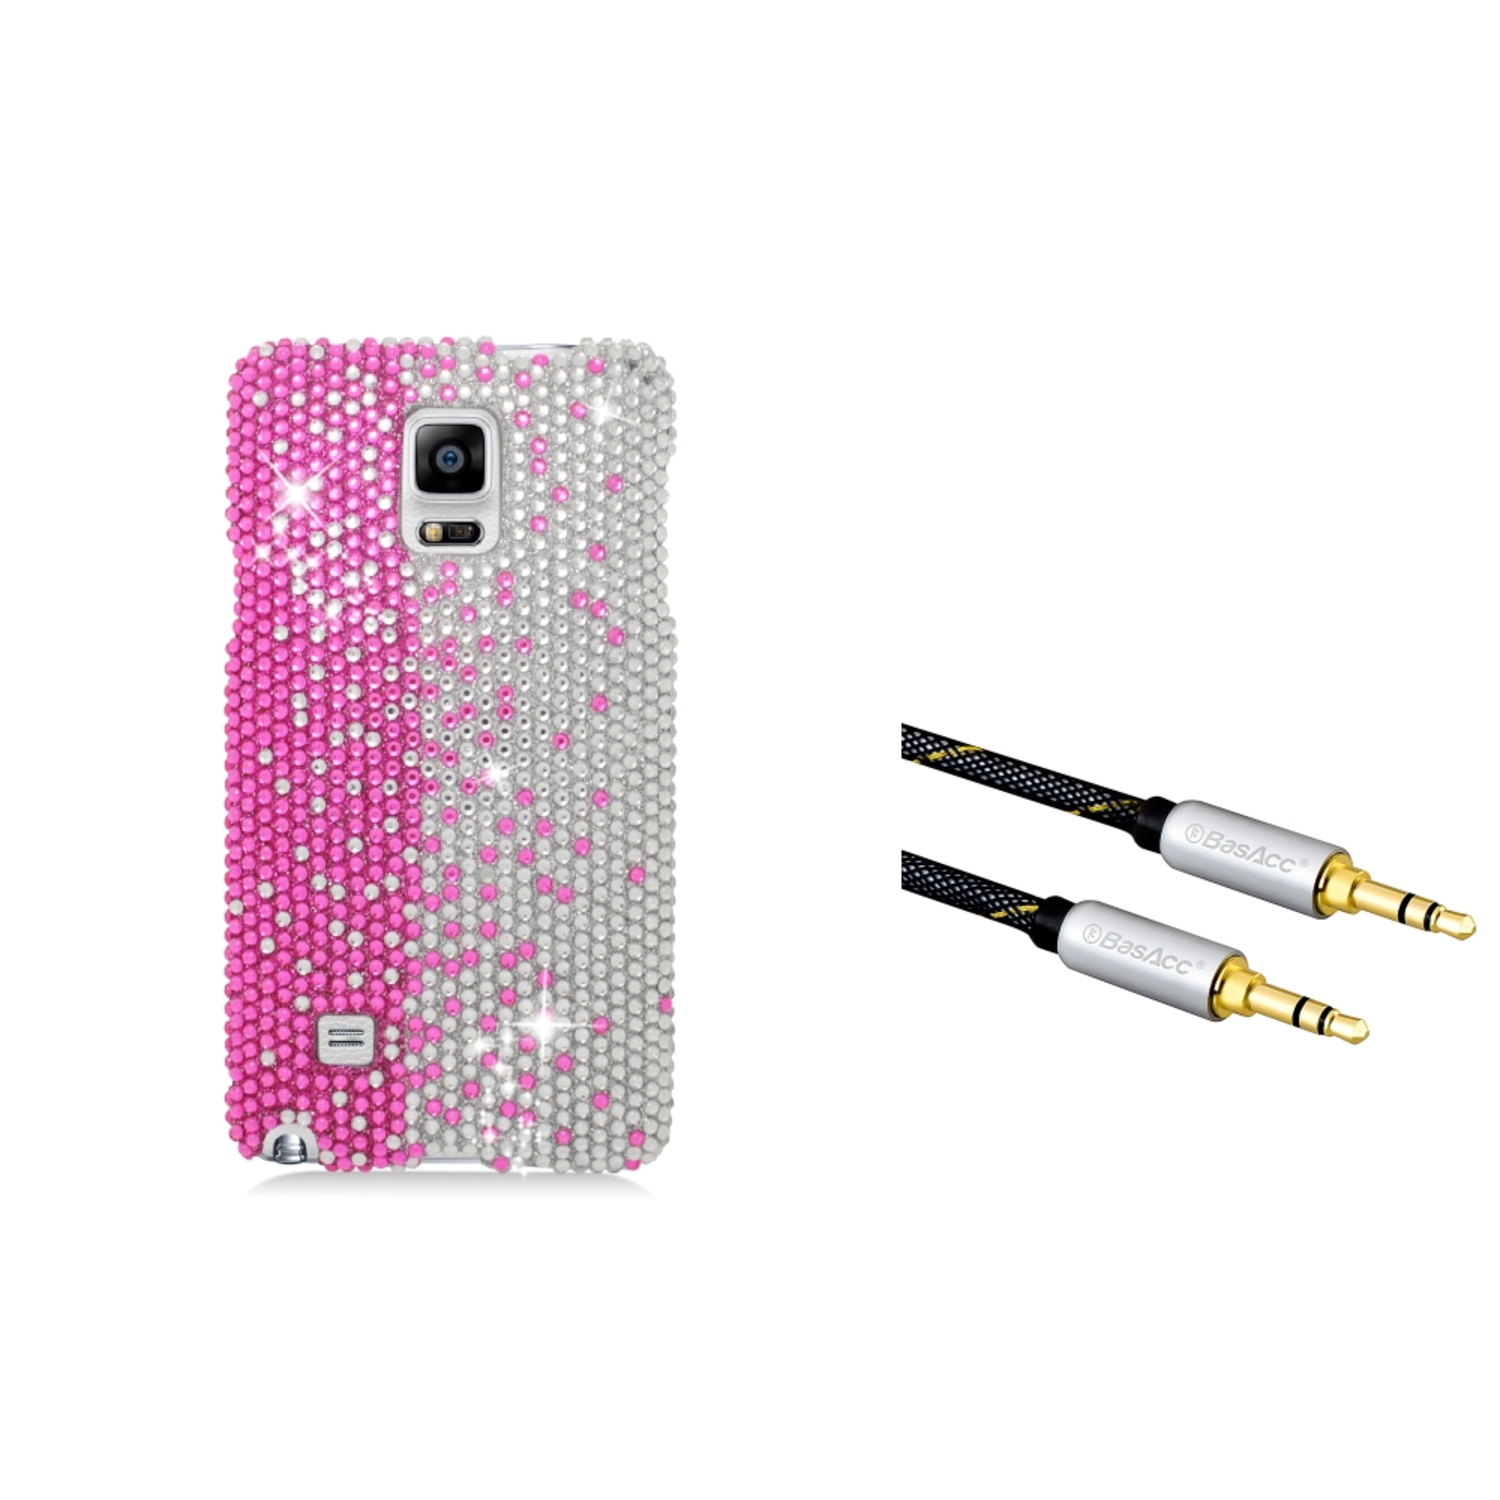 Insten Hard Rhinestone Case For Samsung Galaxy Note 4 - Hot Pink/White (with 3.5mm Universal Audio Cable M/M)